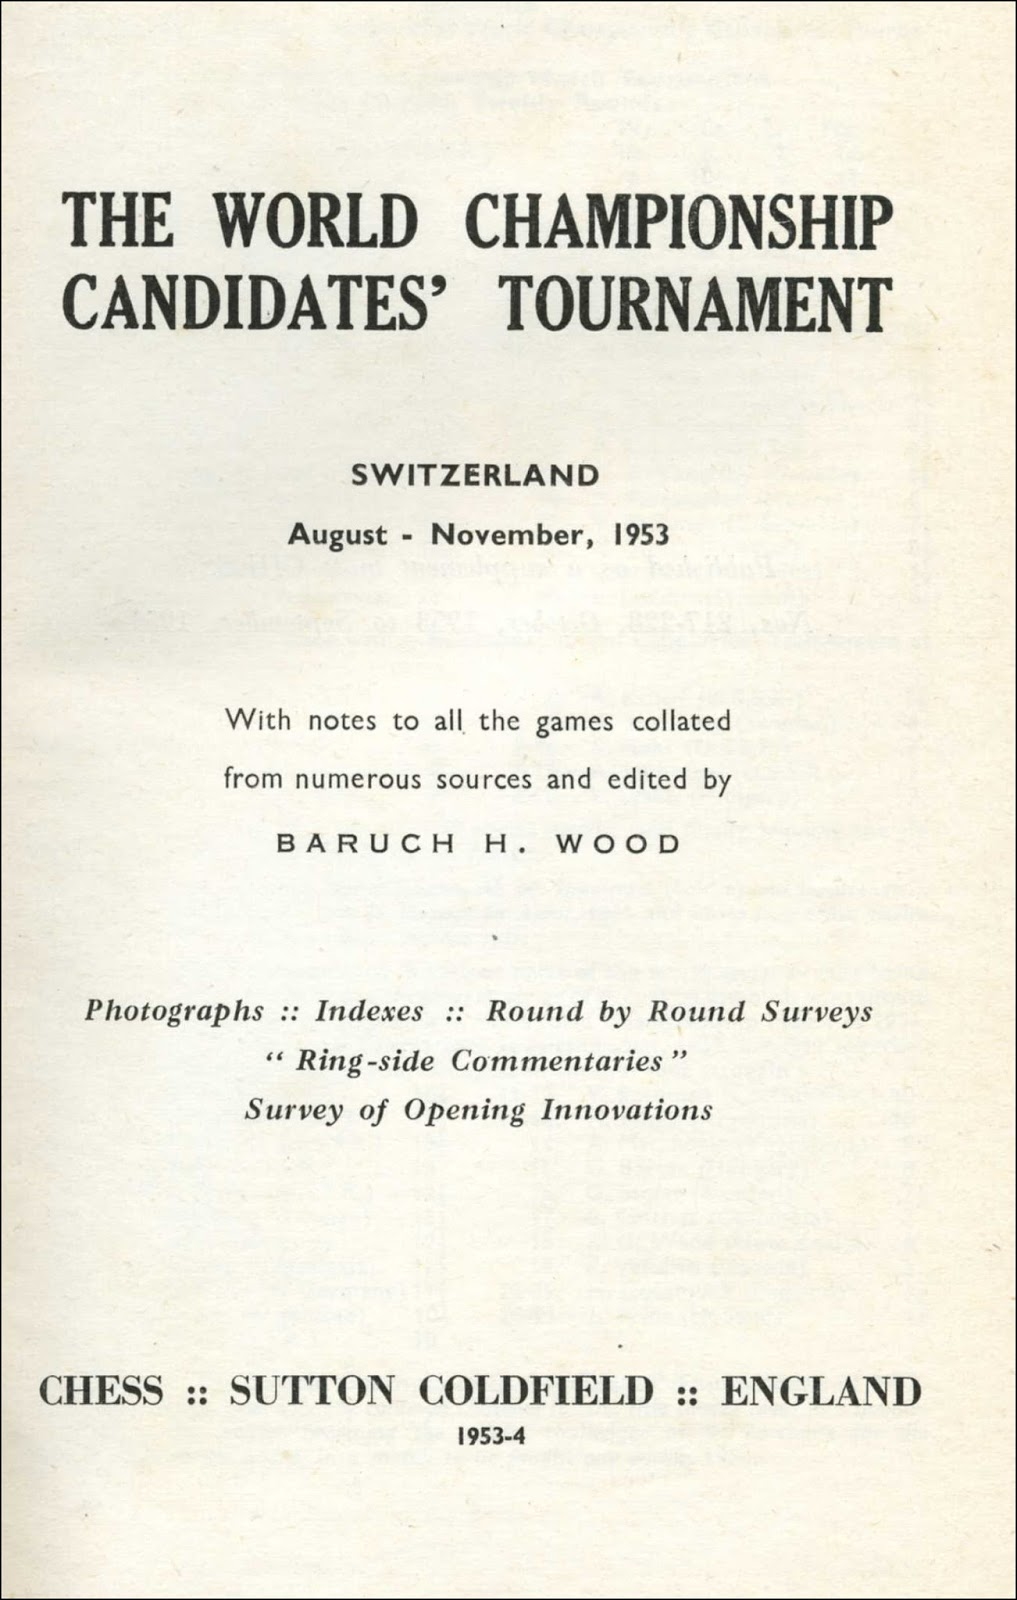 World Championship Candidates Tournament 1953